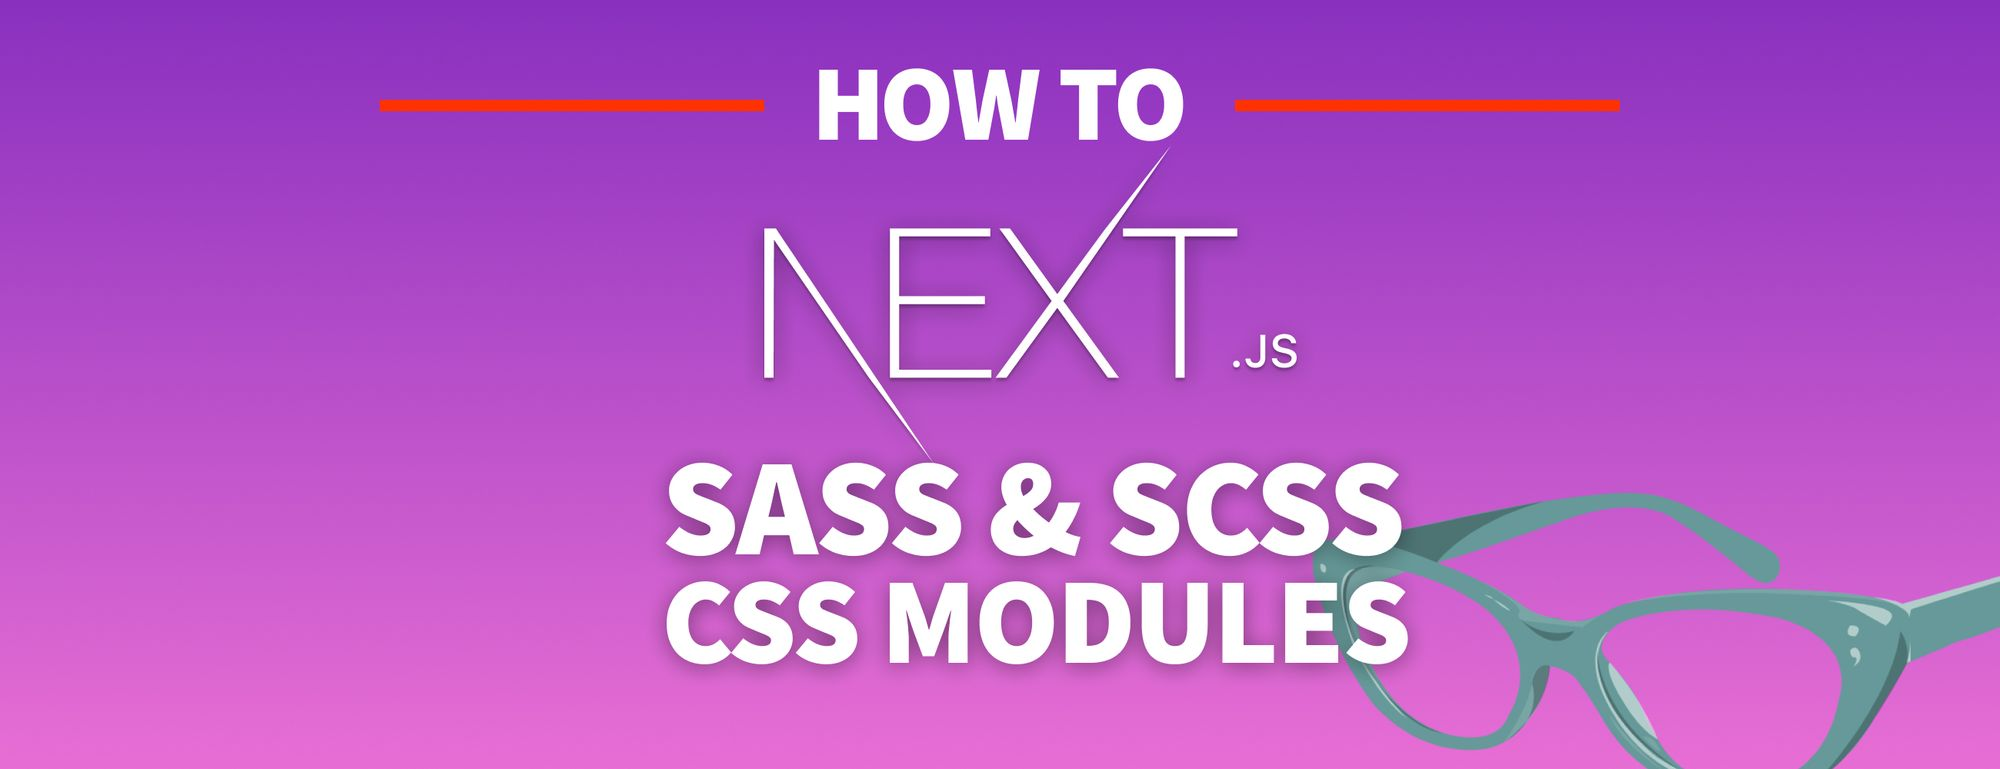 How to Use Sass with CSS Modules in Next.js